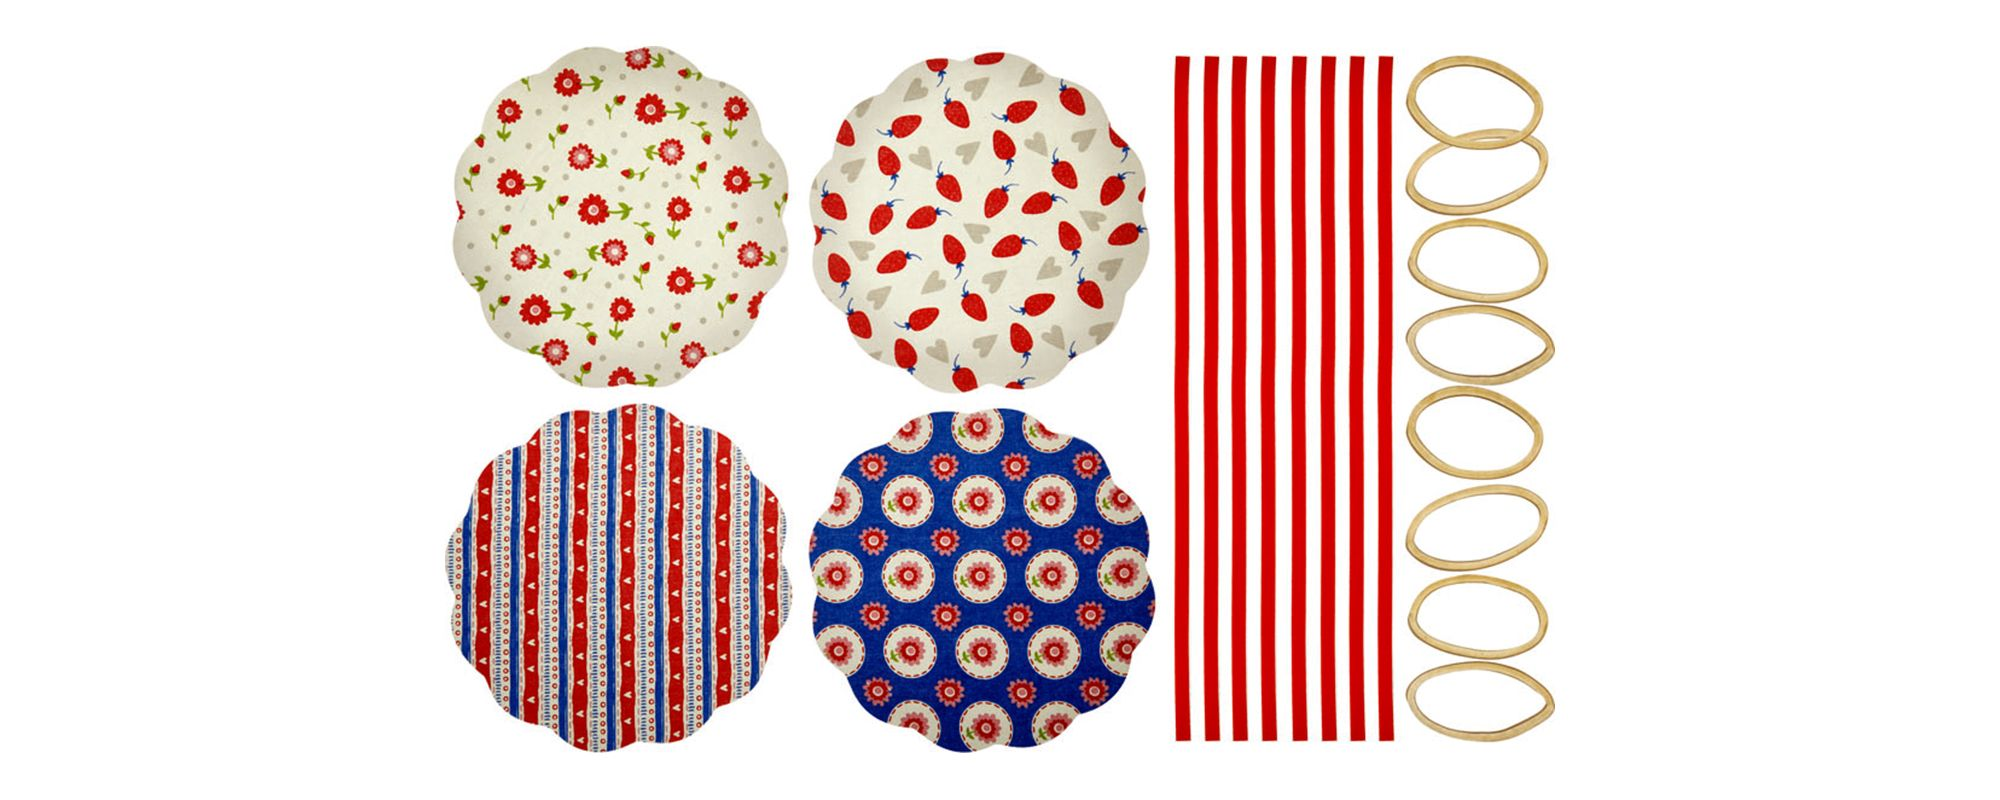 Kitchen Craft Home Made Pack of Eight Heart Patterned Fabric Jam Cover Kits